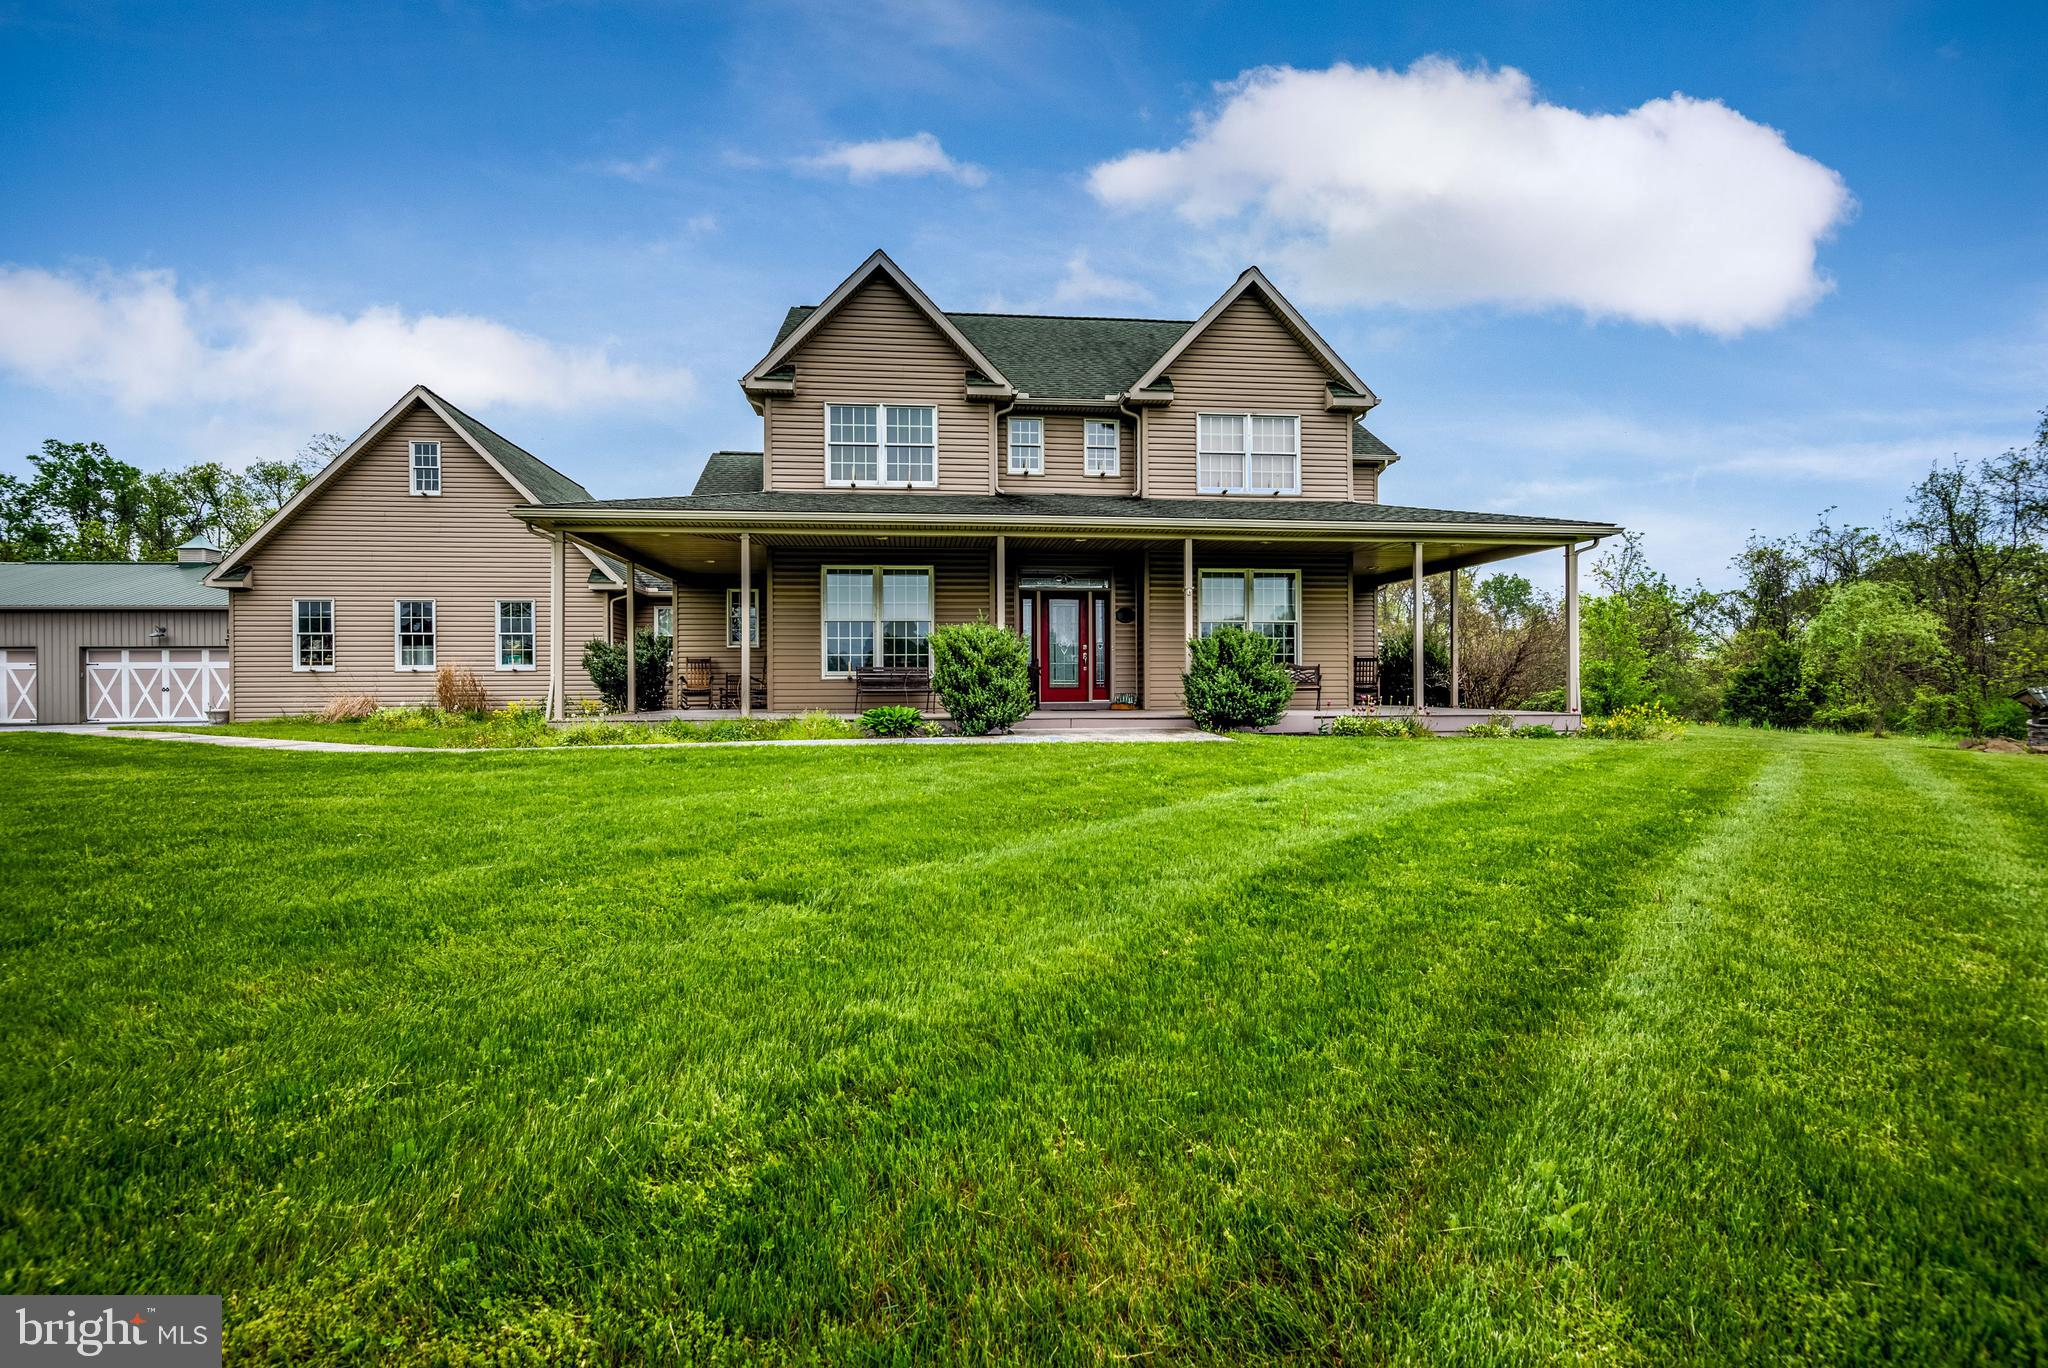 684 CORN HILL ROAD, ETTERS, PA 17319